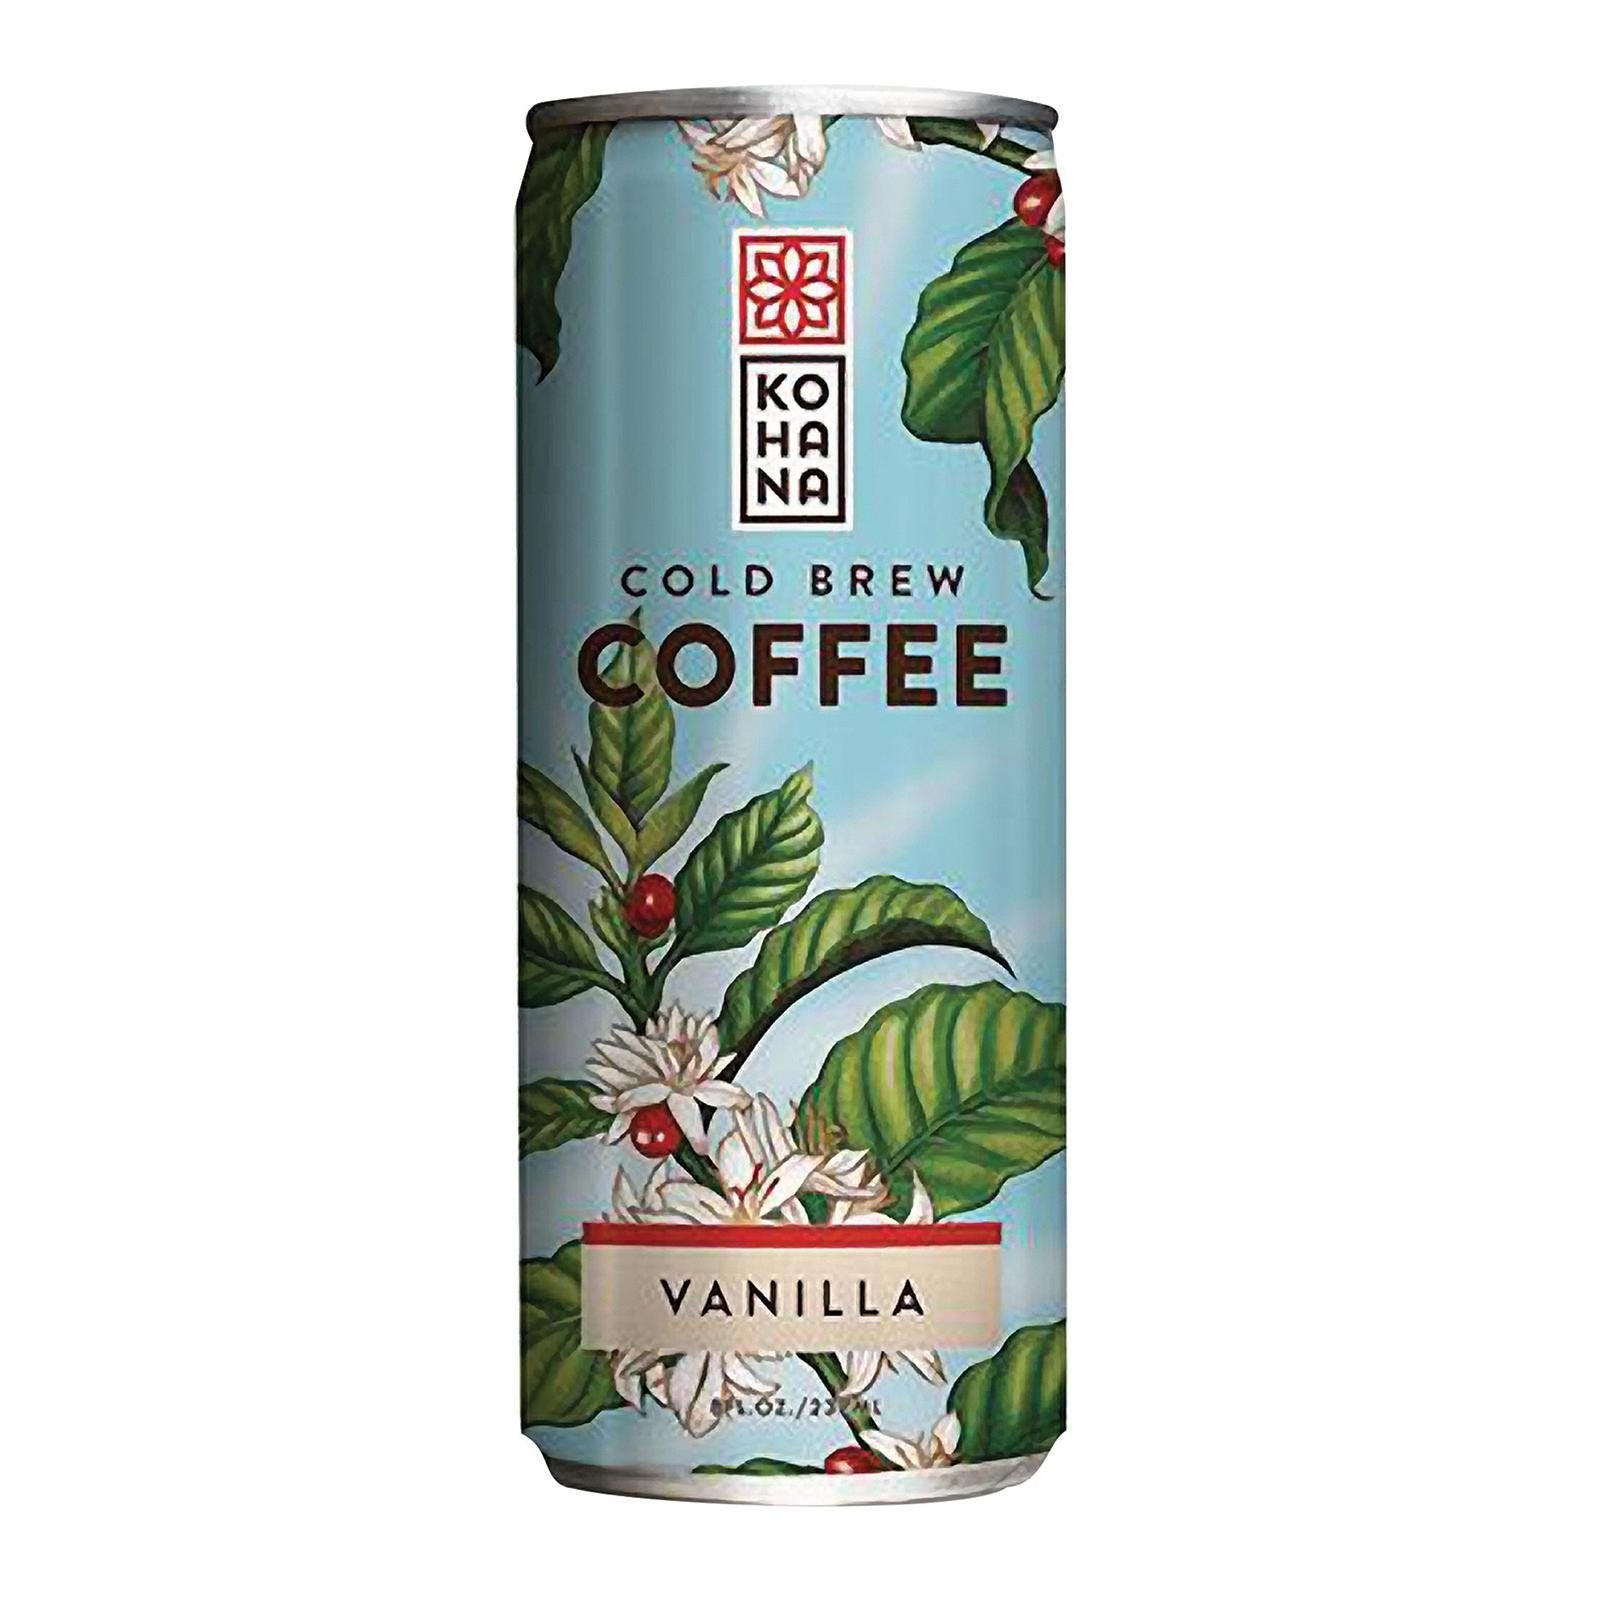 Kohana Cold Brew Coffee Beverage - Taihitian Vanilla - Case Of 12 - 8 Fl Oz.